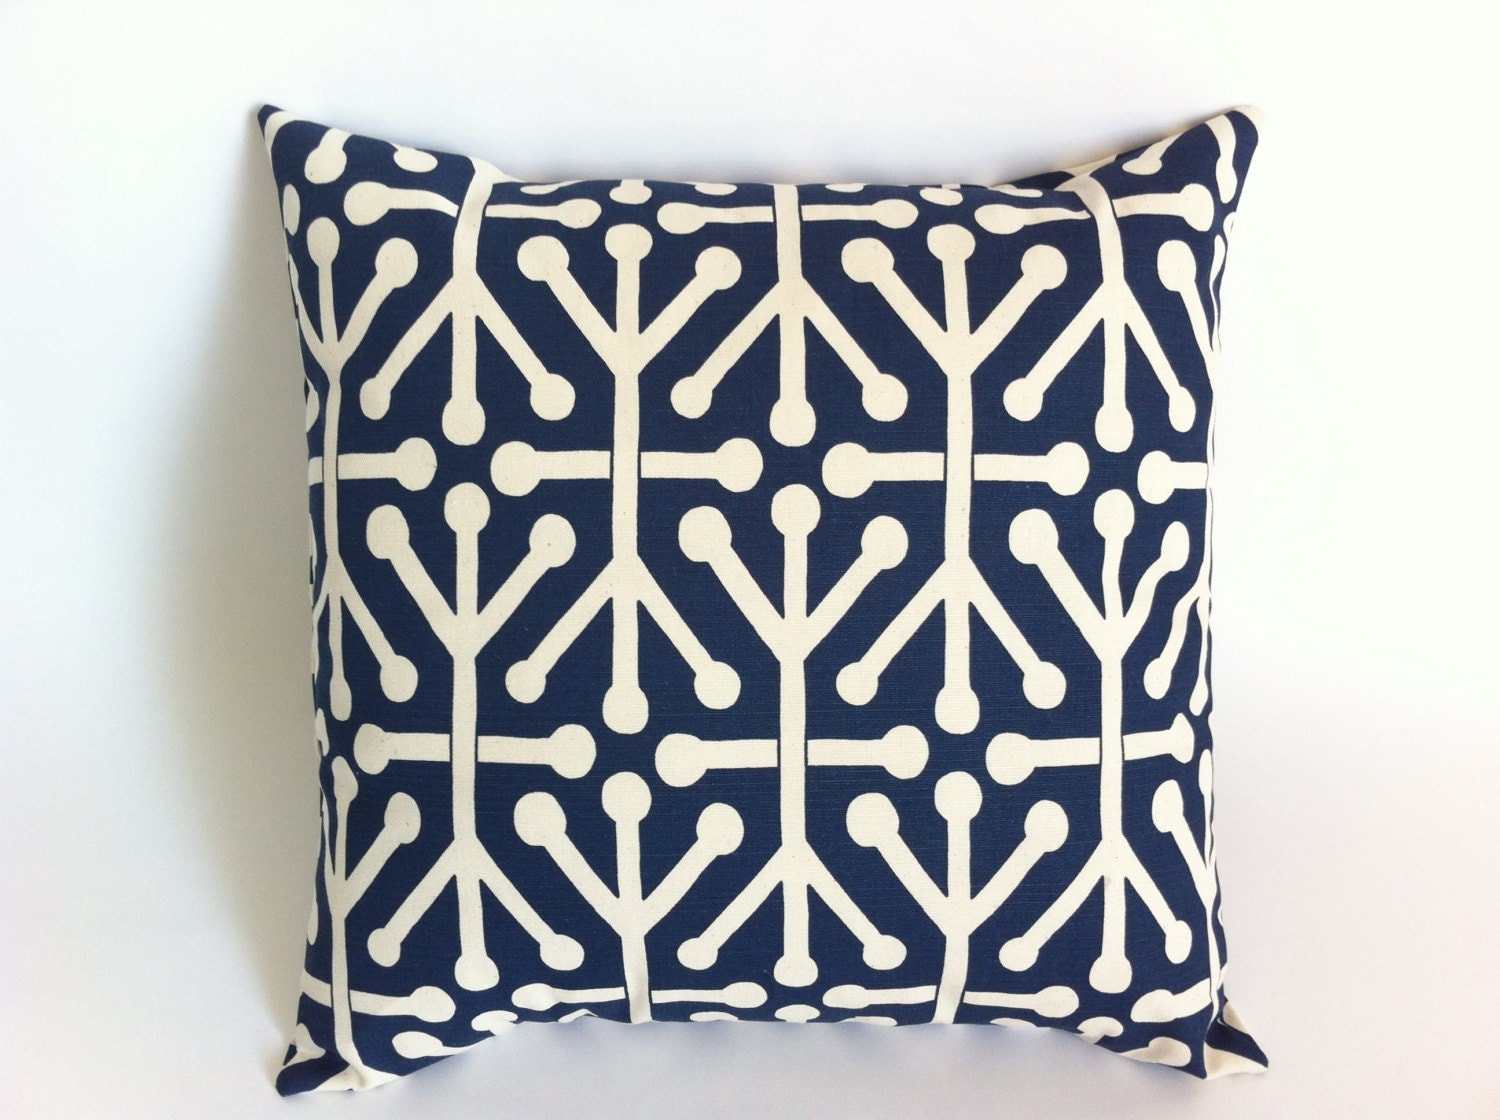 Decorative Pillow Covers With Zippers : Two Navy Blue Decorative Throw Zipper Pillow Covers by Pillomatic